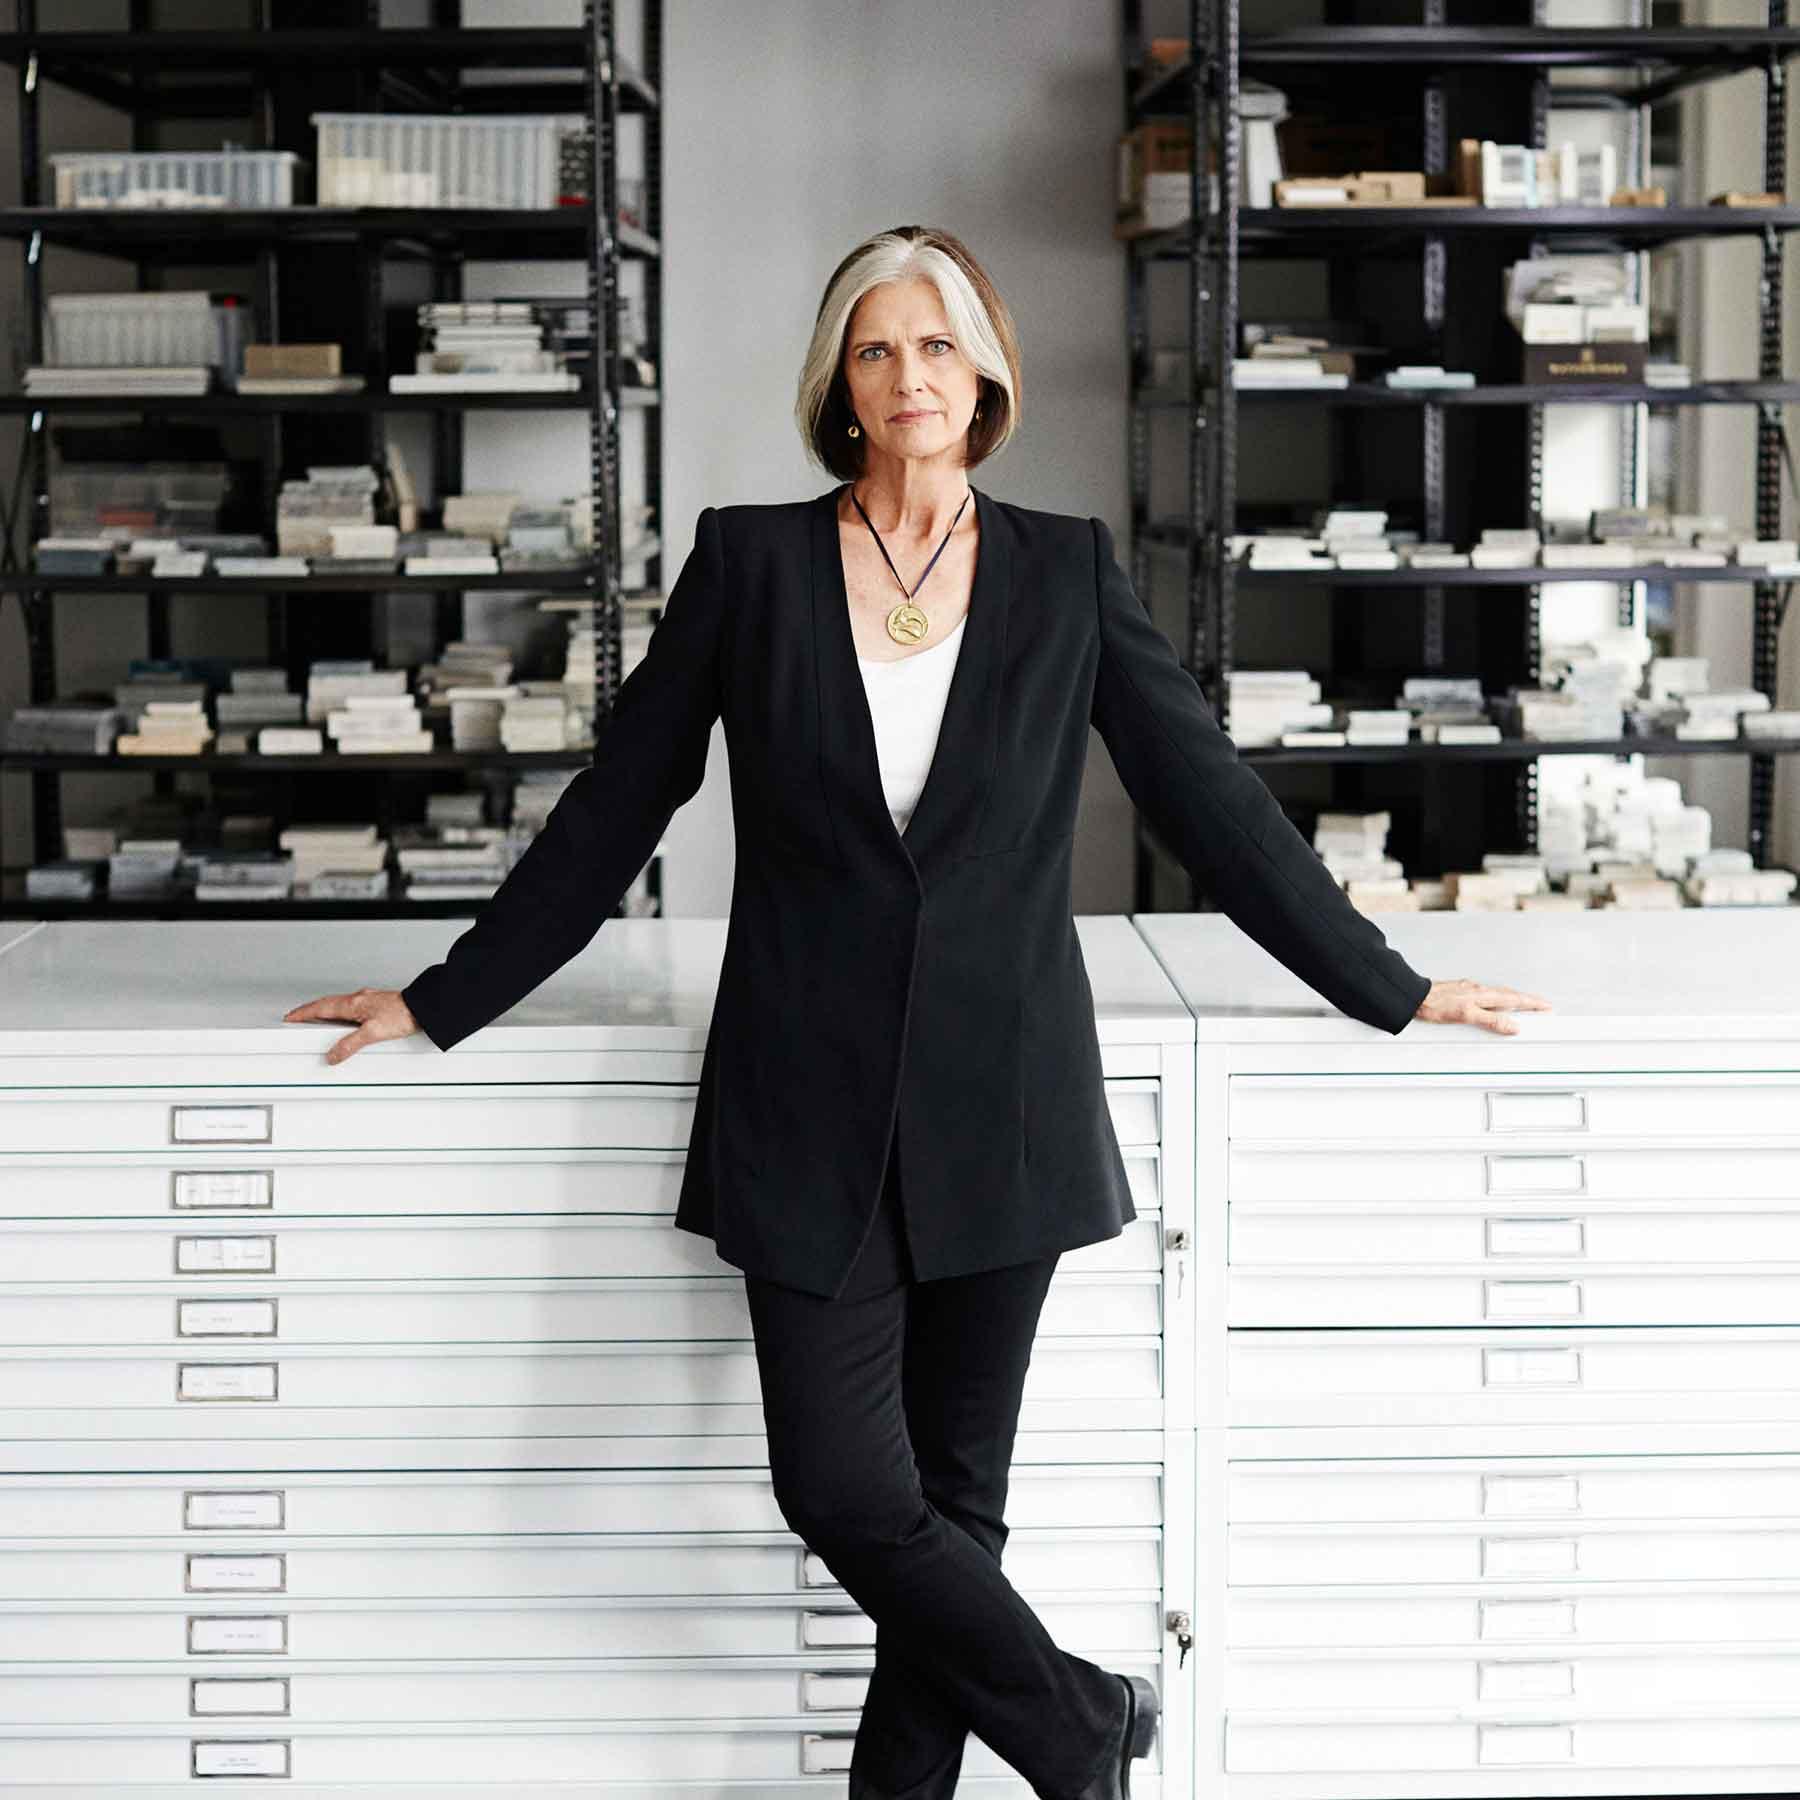 How Deborah Berke Became One of Architecture's Most Visible Women – SURFACE